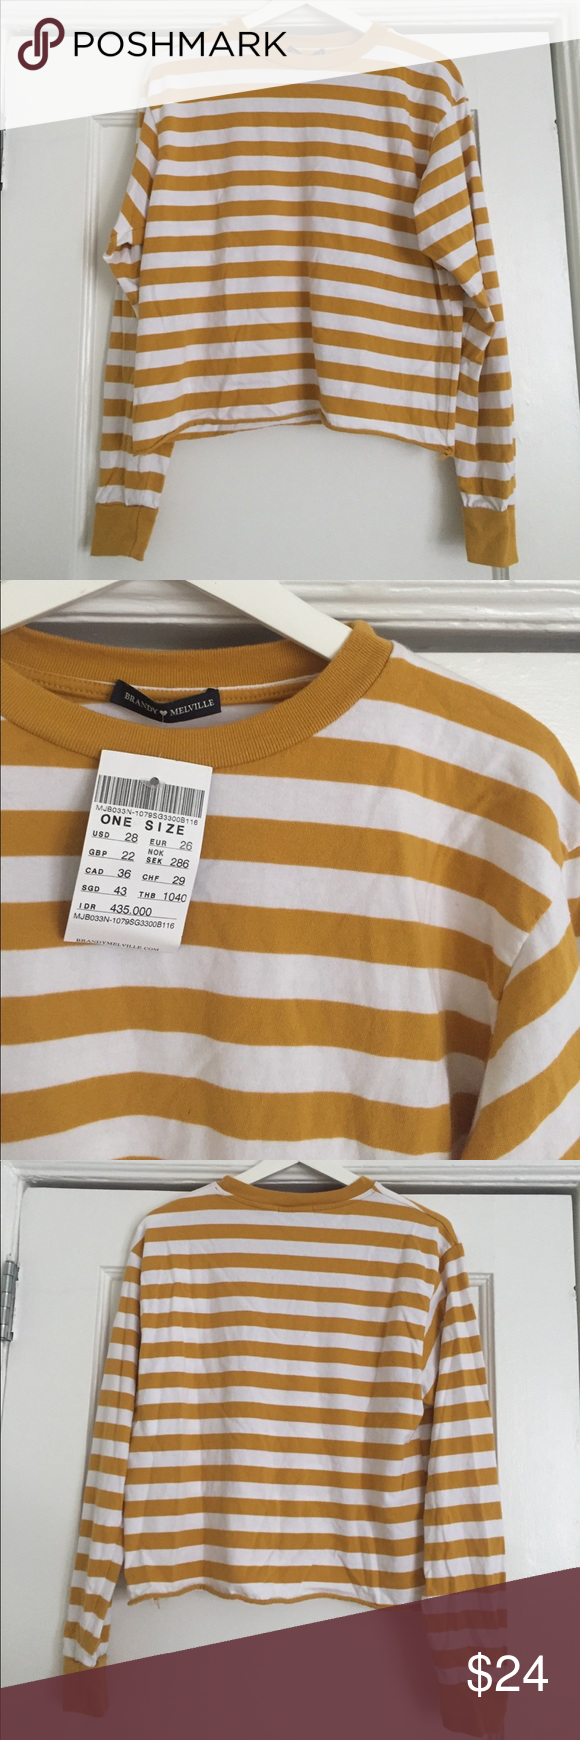 196a60ac72 Brandy Melville mustard stripe top Long sleeve mustard and white stripe top.  Mid-length